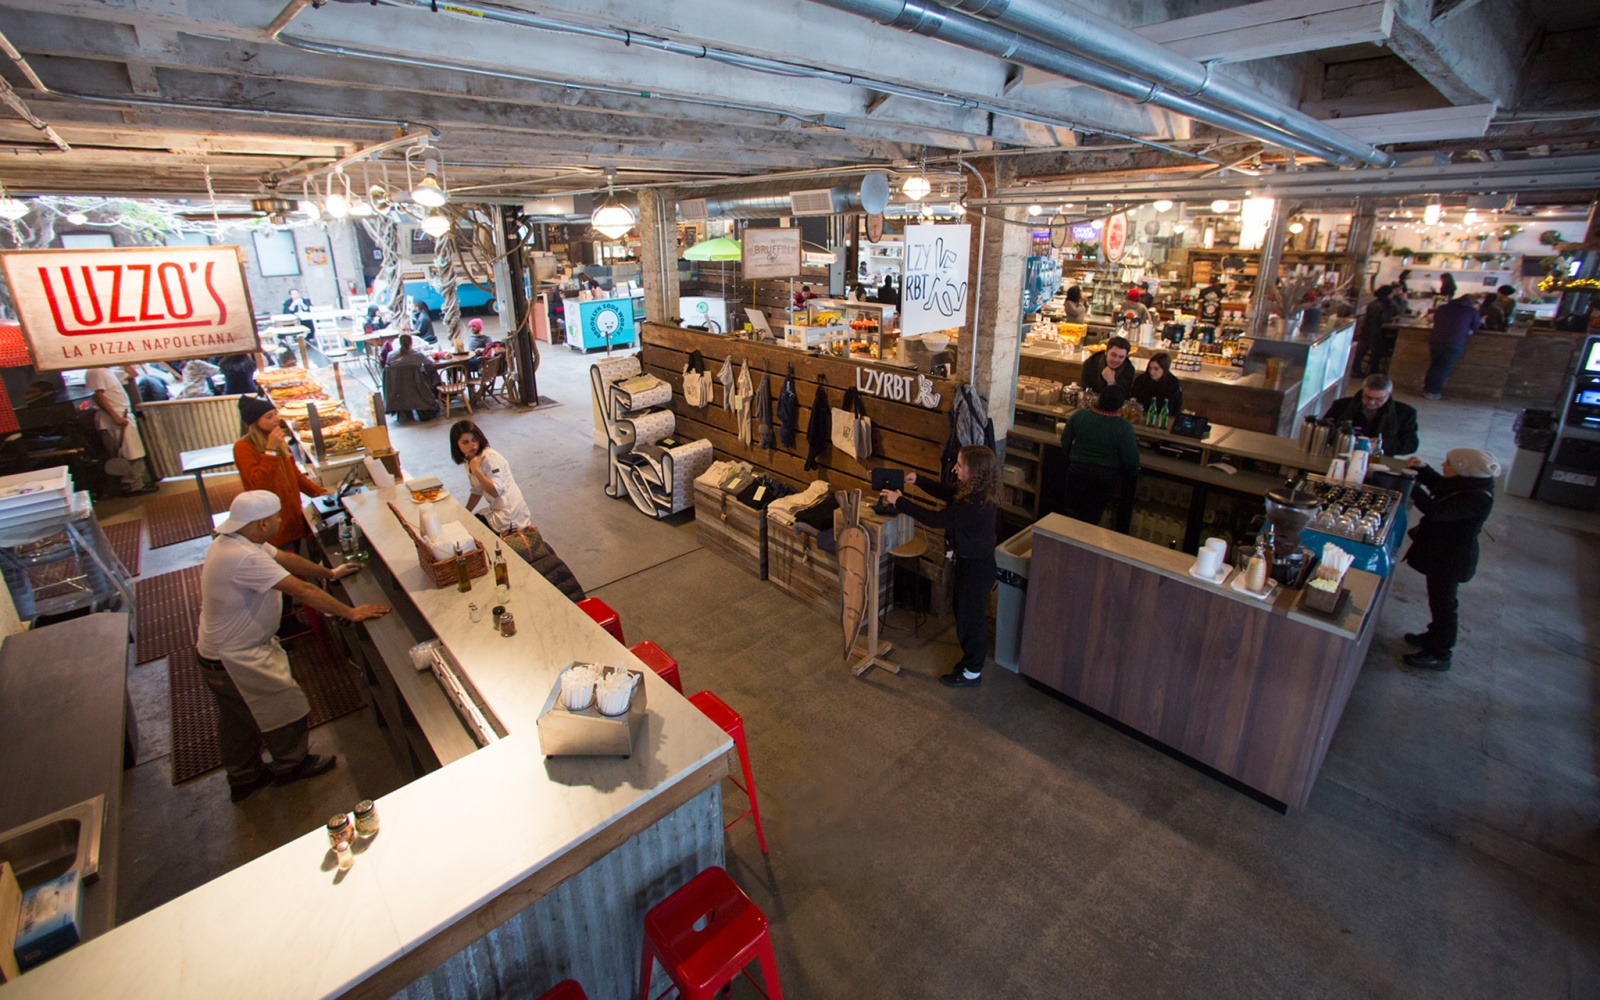 New York's Meatpacking